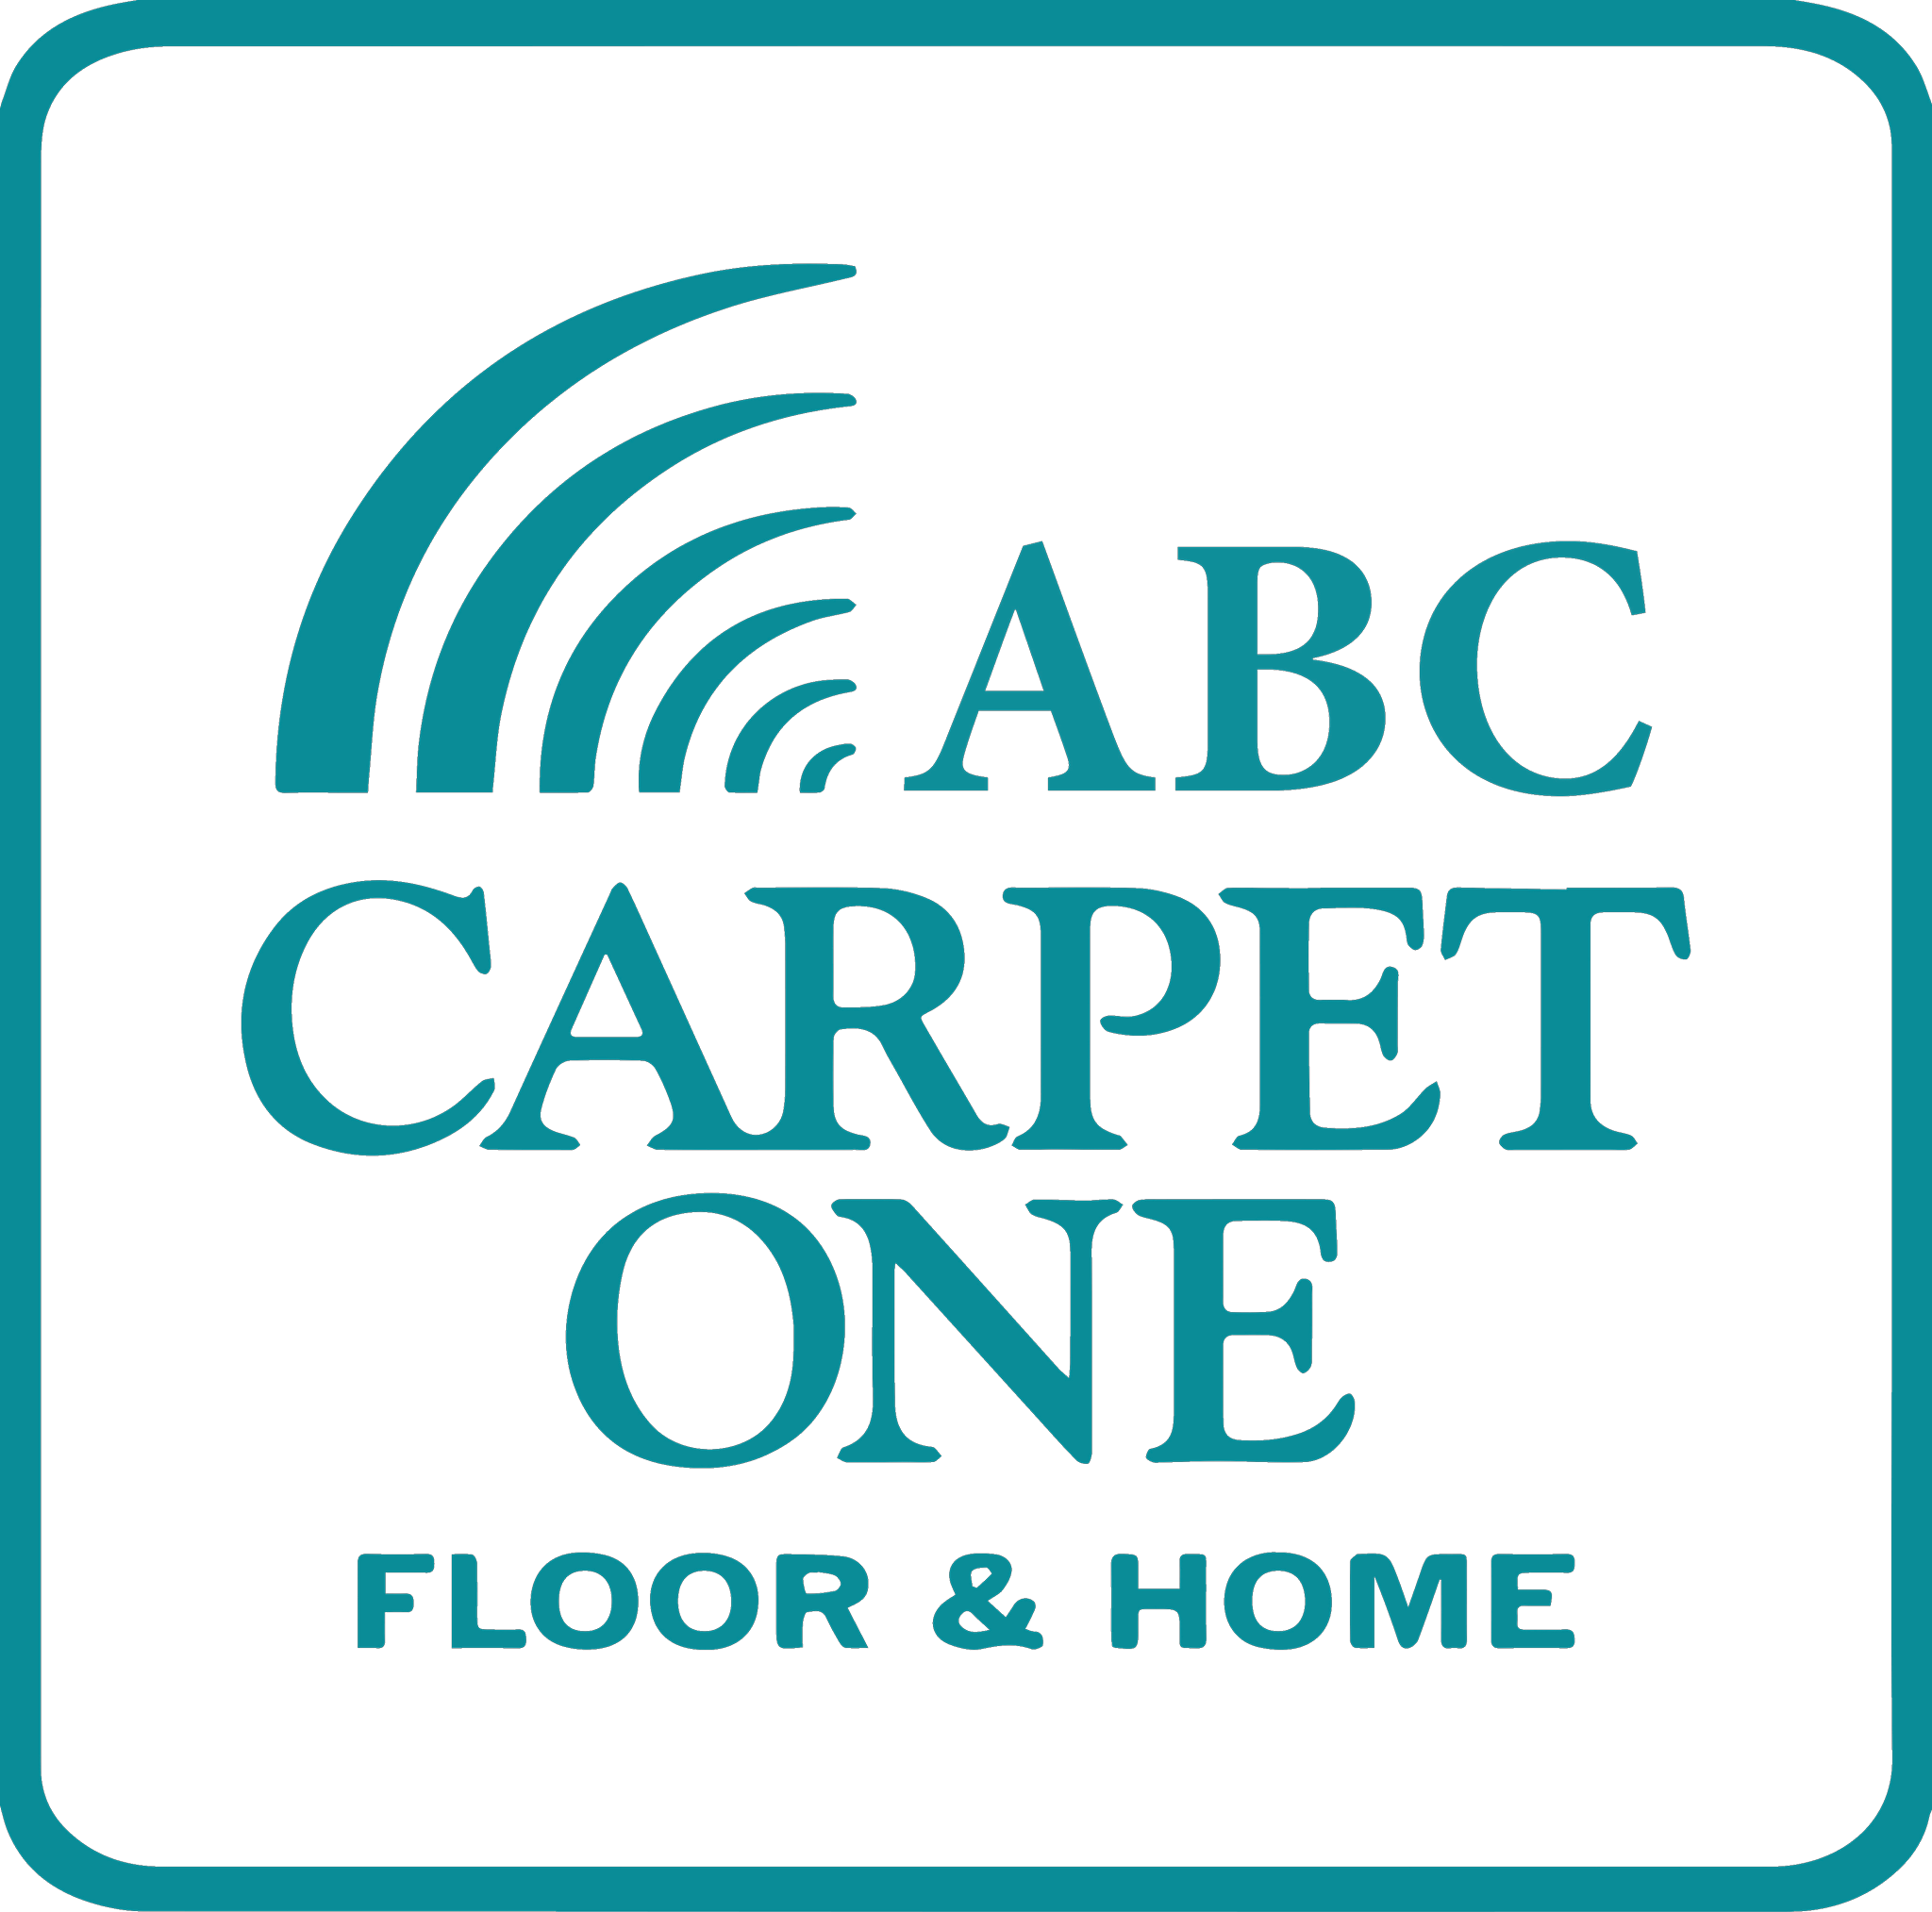 ABC Carpet One